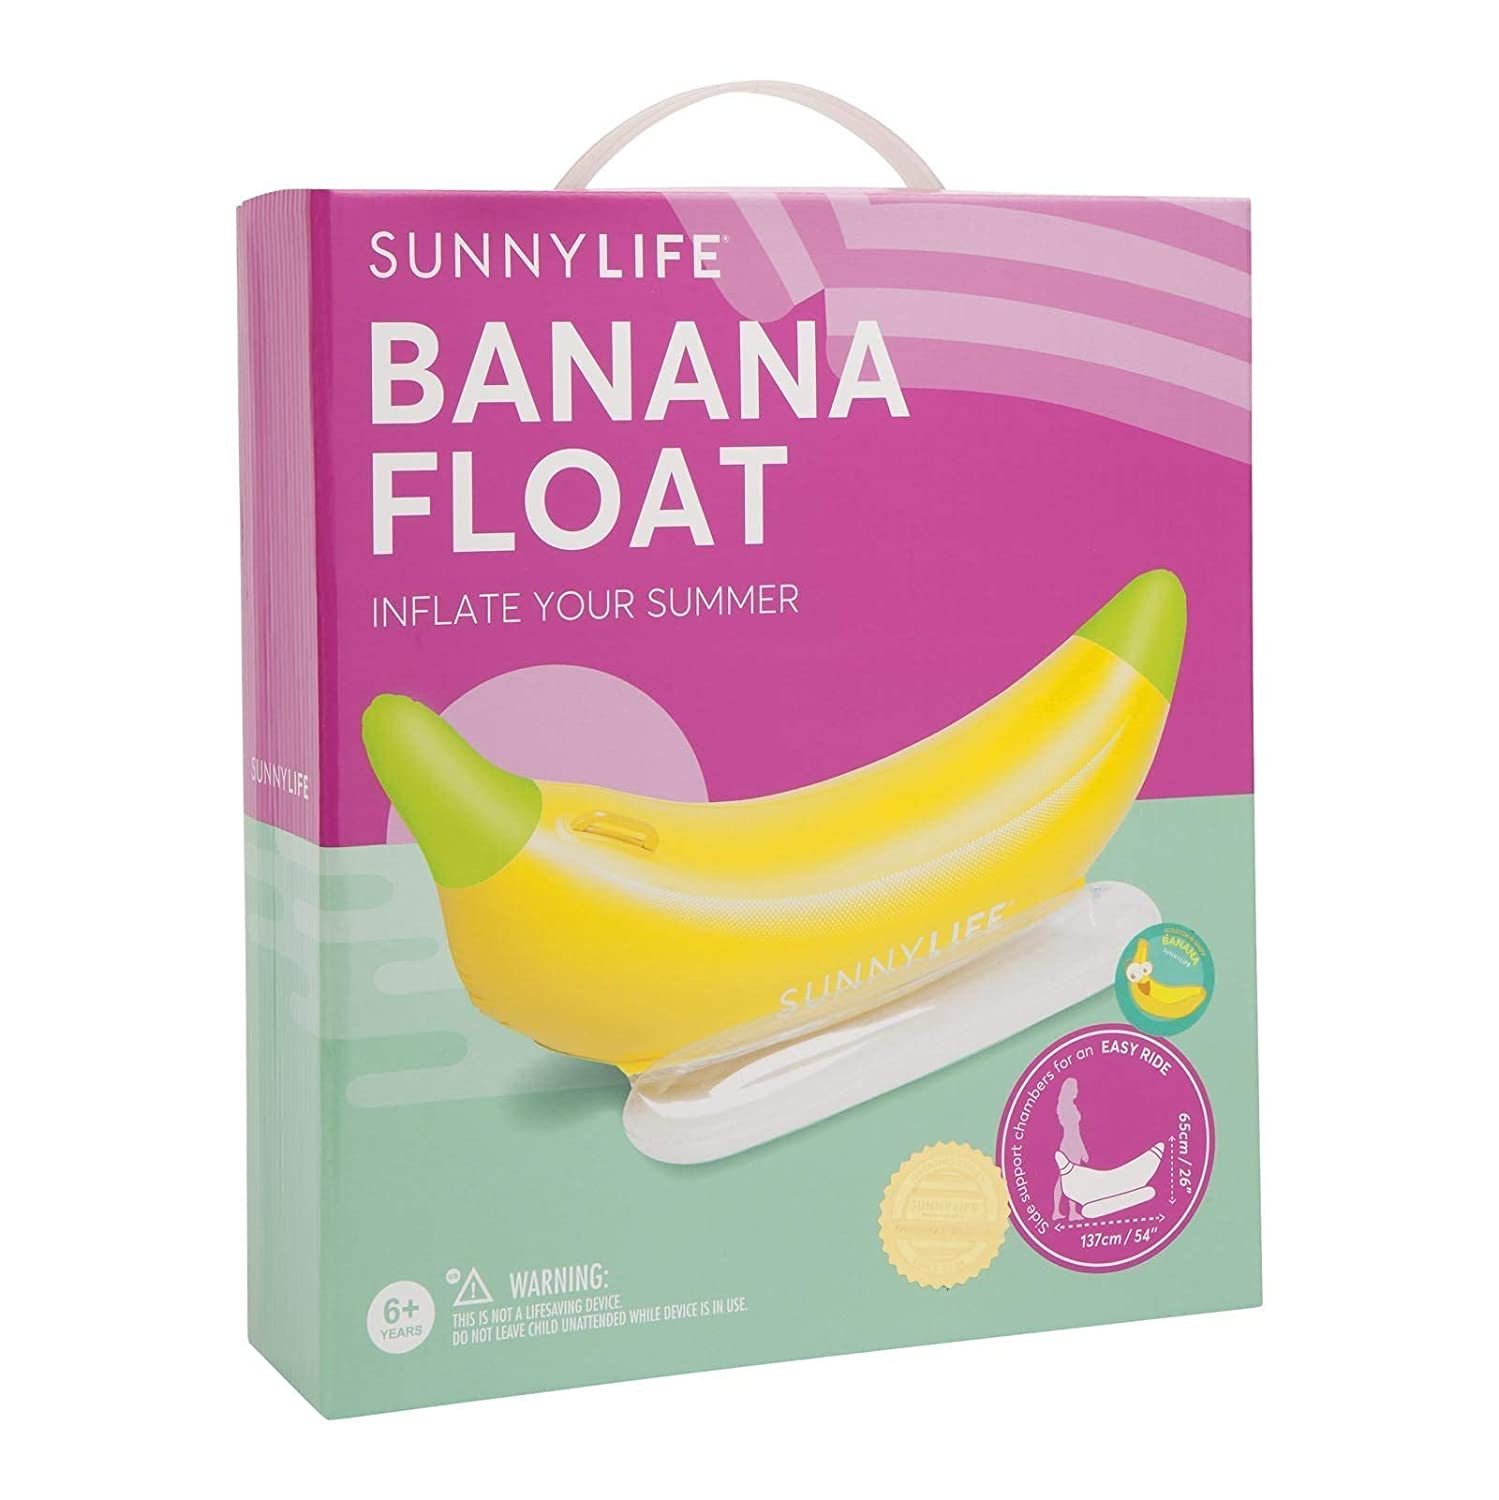 Banana Yellow Sunnylife Kids Inflatable Pool or Beach Floating Seat Raft for Baby or Infants